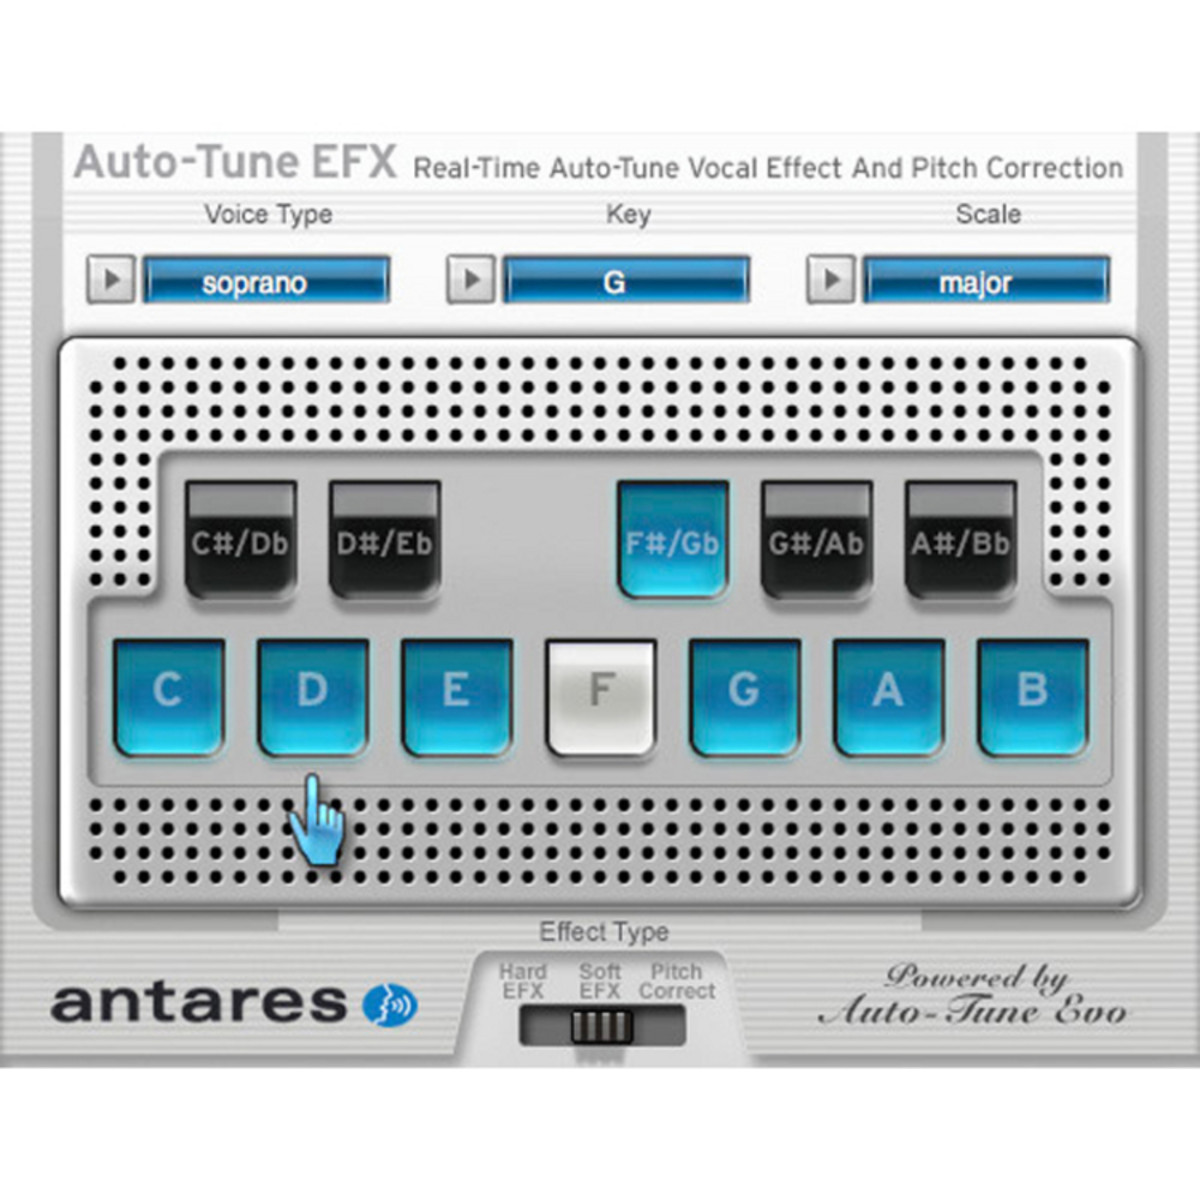 disc antares auto tune efx 2 pitch correction software at gear4music ie